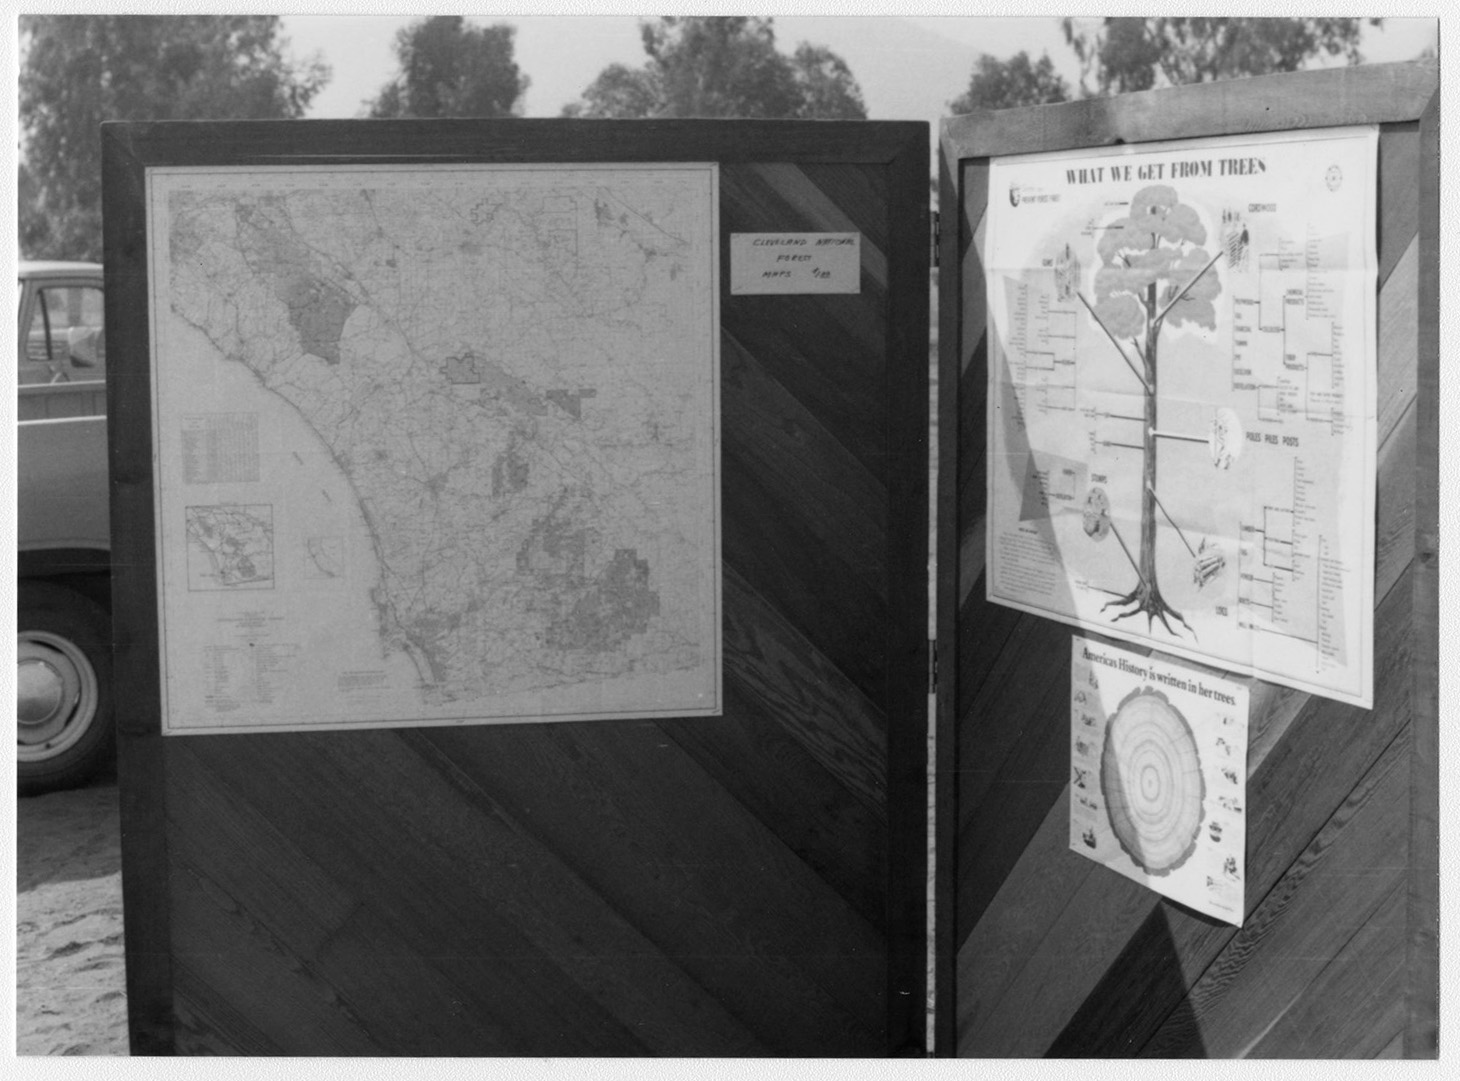 Arbor Day, Wild Animal Park, USDA [U.S. Department of Agriculture] Forest Service Display, Map of Cleveland National Forest, Lower Right Poster is Tree Rings and History Occurring at That Time in Tree's Life